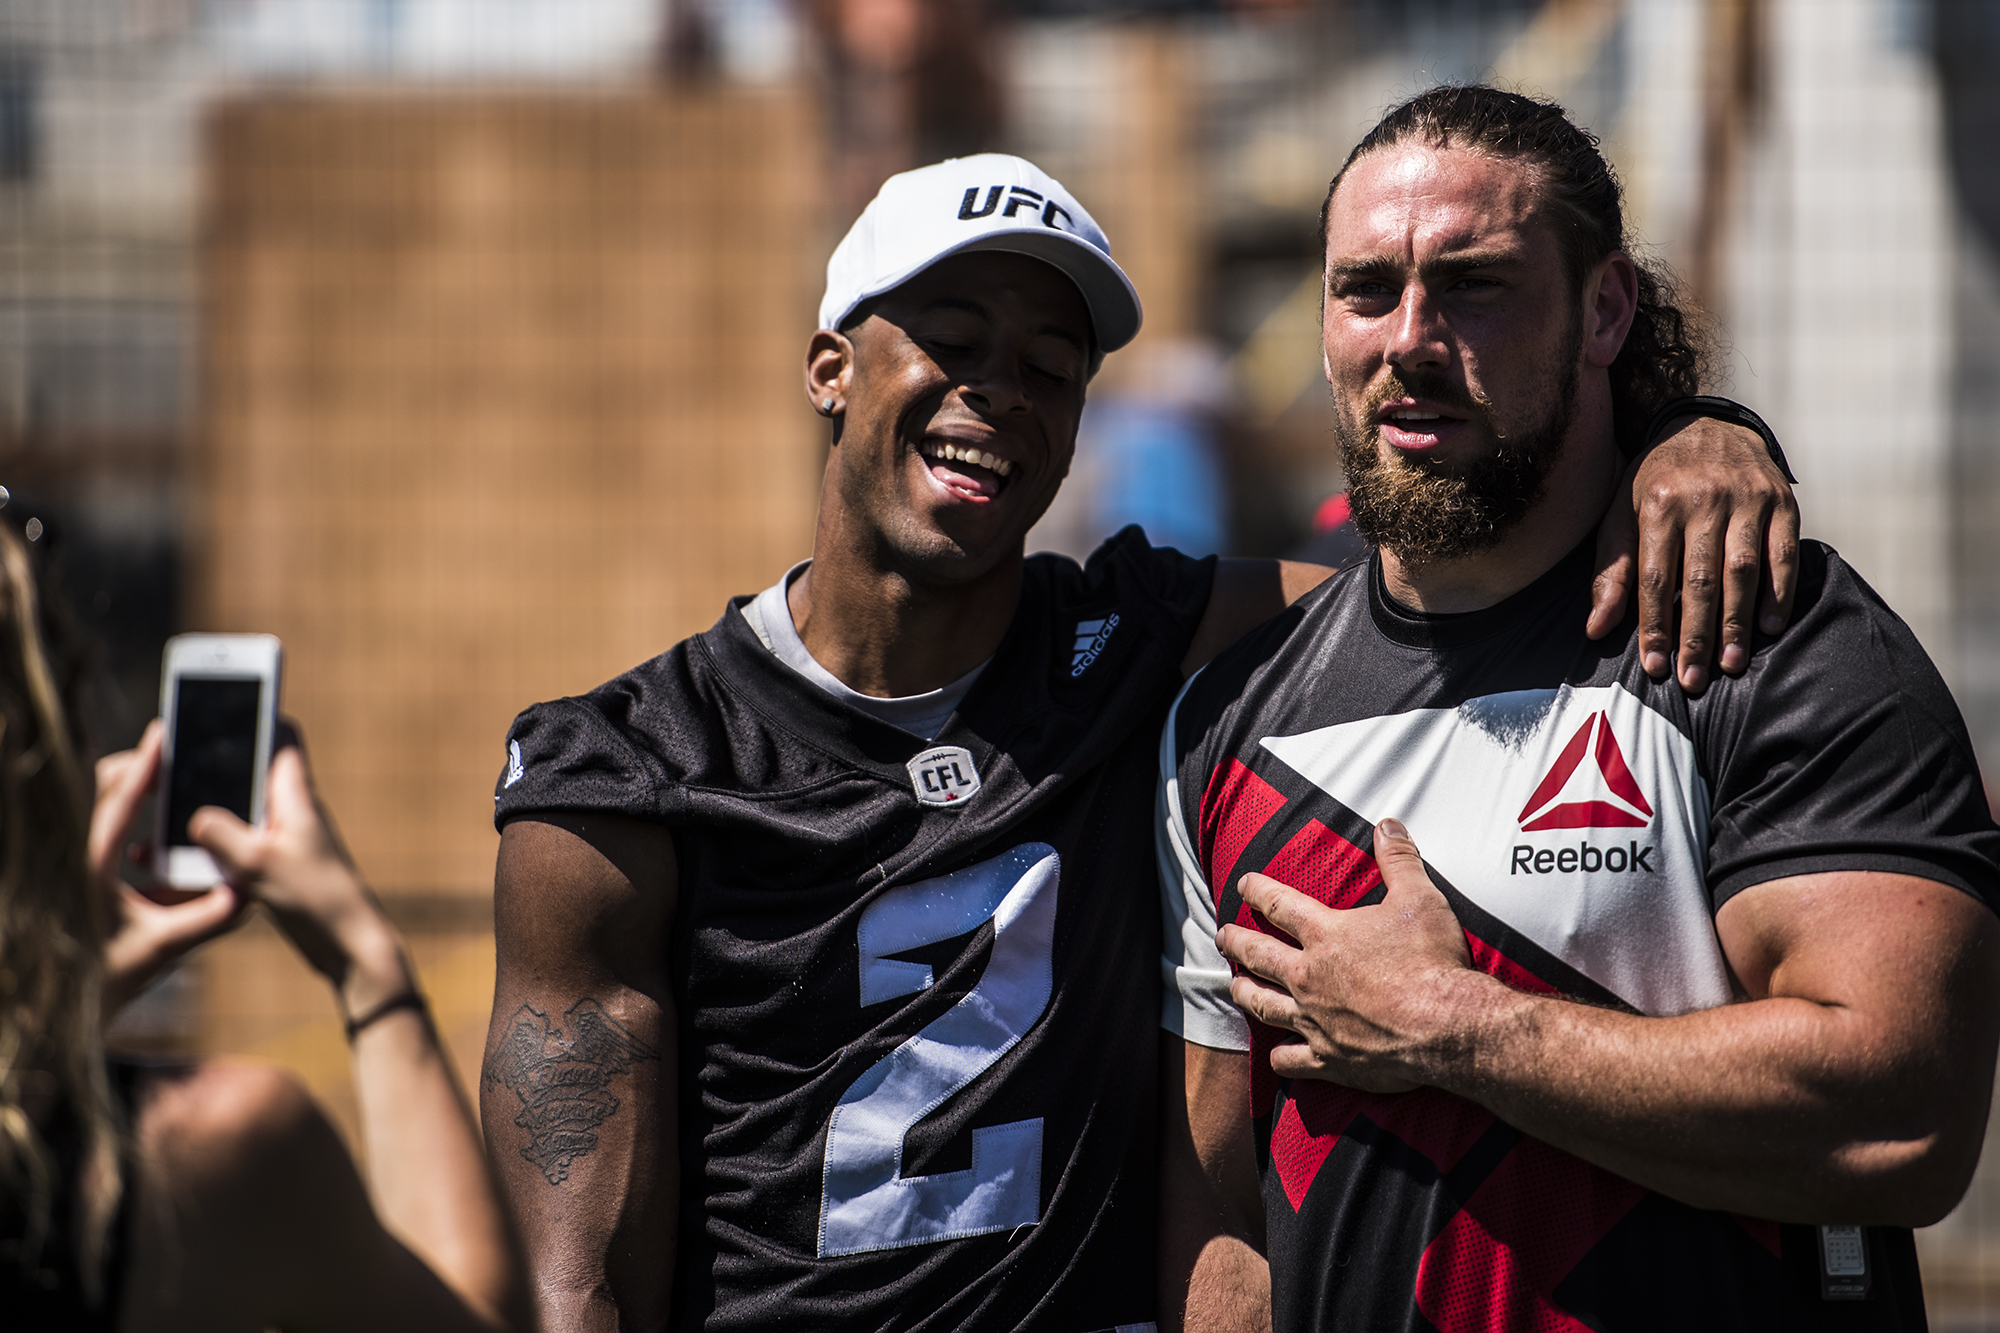 Jermaine Robinson (left) and Connor Williams (right) watch as UFC fighters Cowboy Cerrone and Misha Turkunov demonstrate proper MMA technique at Redblacks practice Wednesday afternoon. (John Barry/ Zuffa LLC)